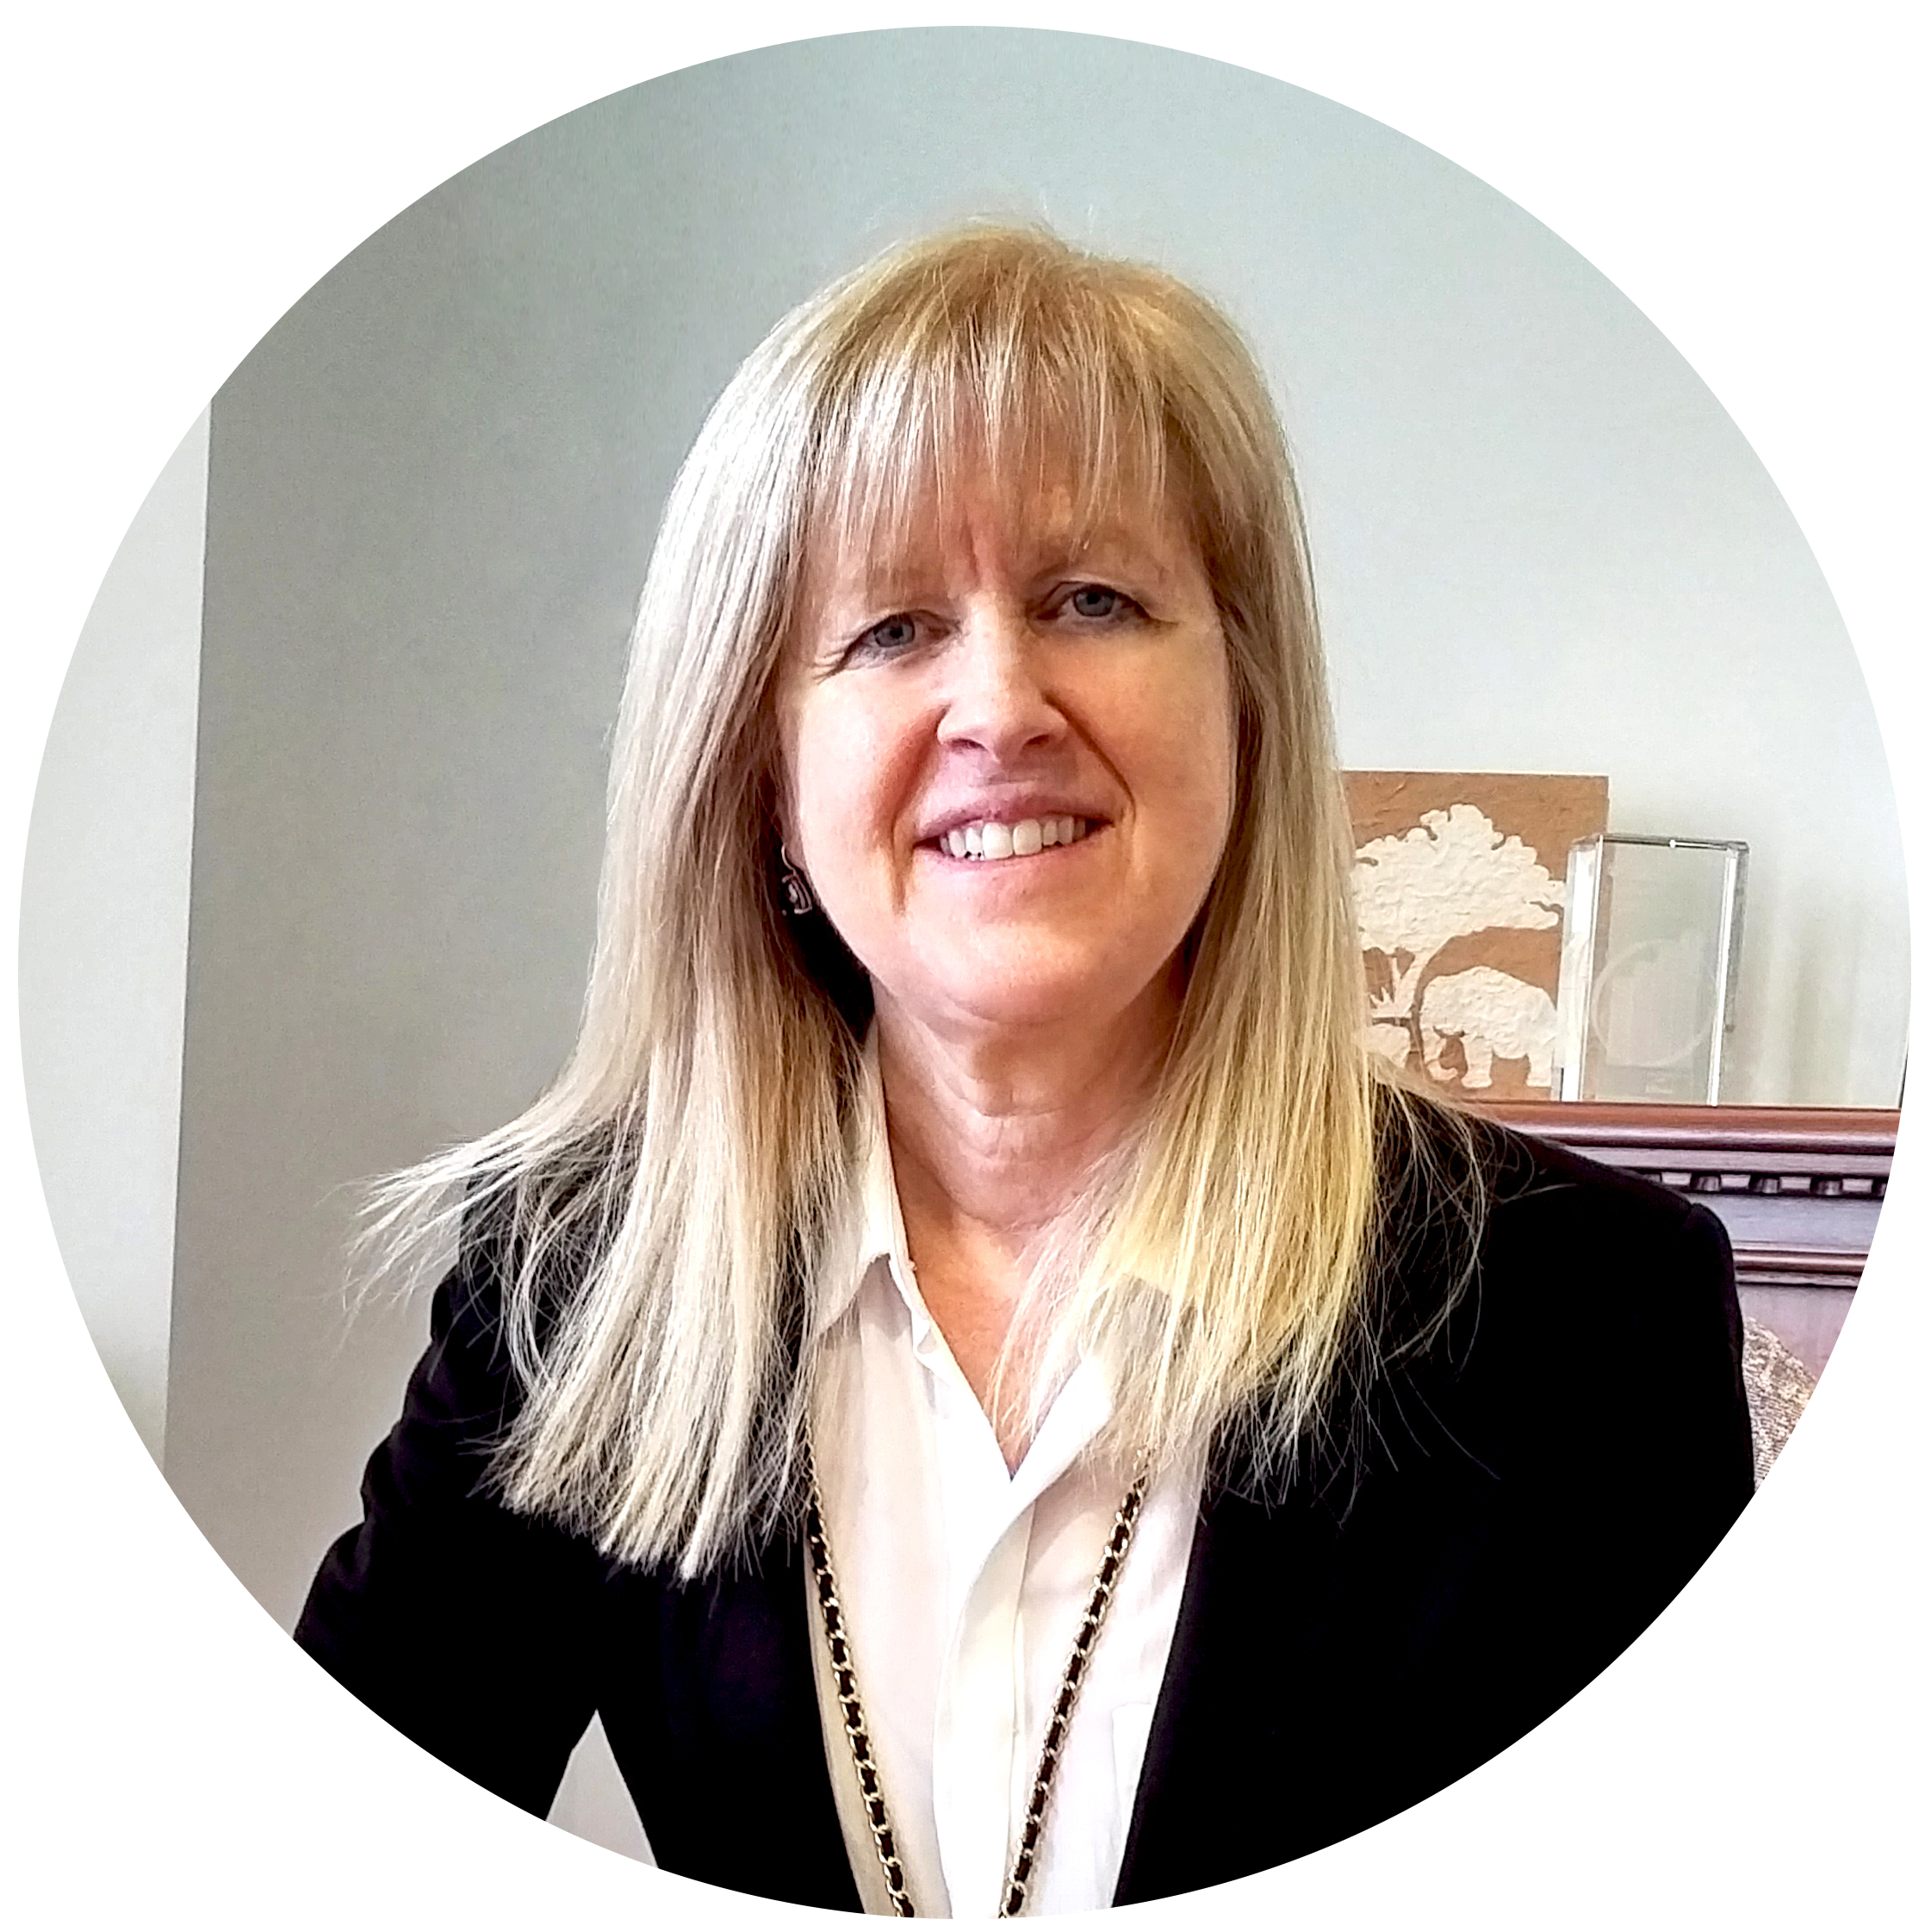 Kim Langen - Founder and CEO of Spirit of Math®. She is responsible for bringing WMO to Canada, and we will have the pleasure of having her attend the WMO 2019 Global Finals in Thailand with us.